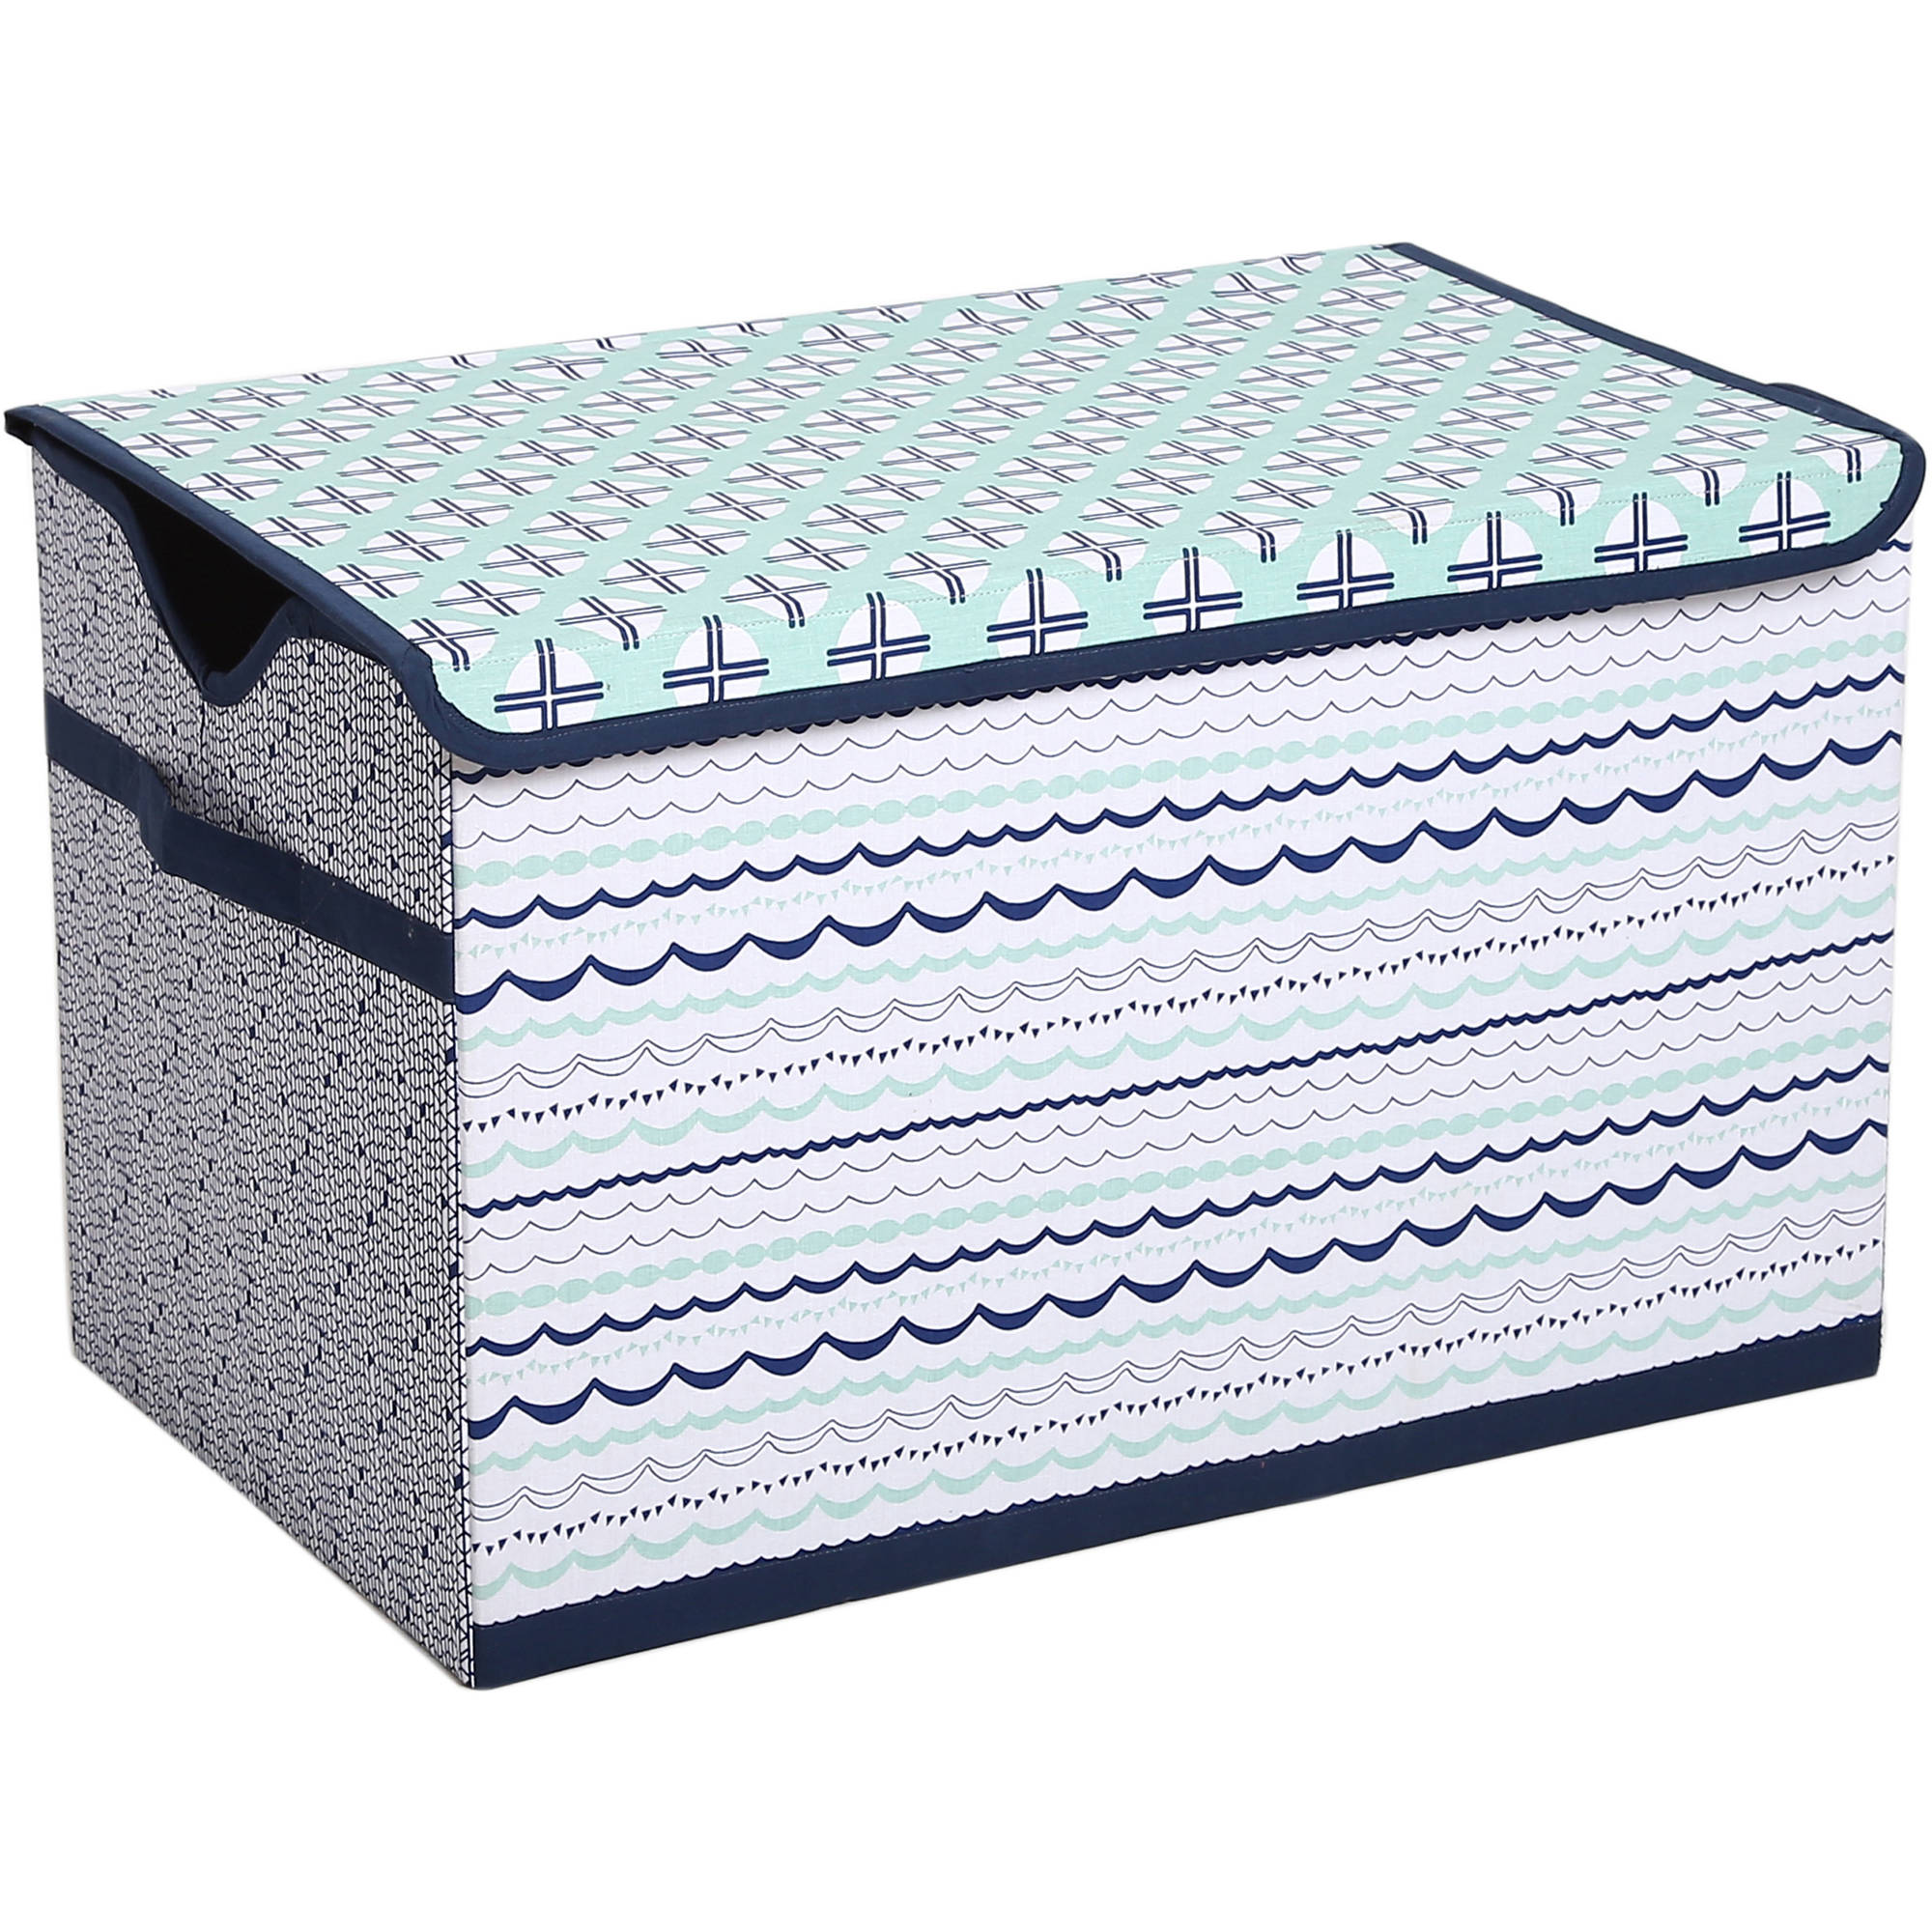 Bacati - Tribal Noah Mint/Navy Cotton Percale Fabric covered Storage, Toy Chest, 24.5 L x 15 W x 14 H inches